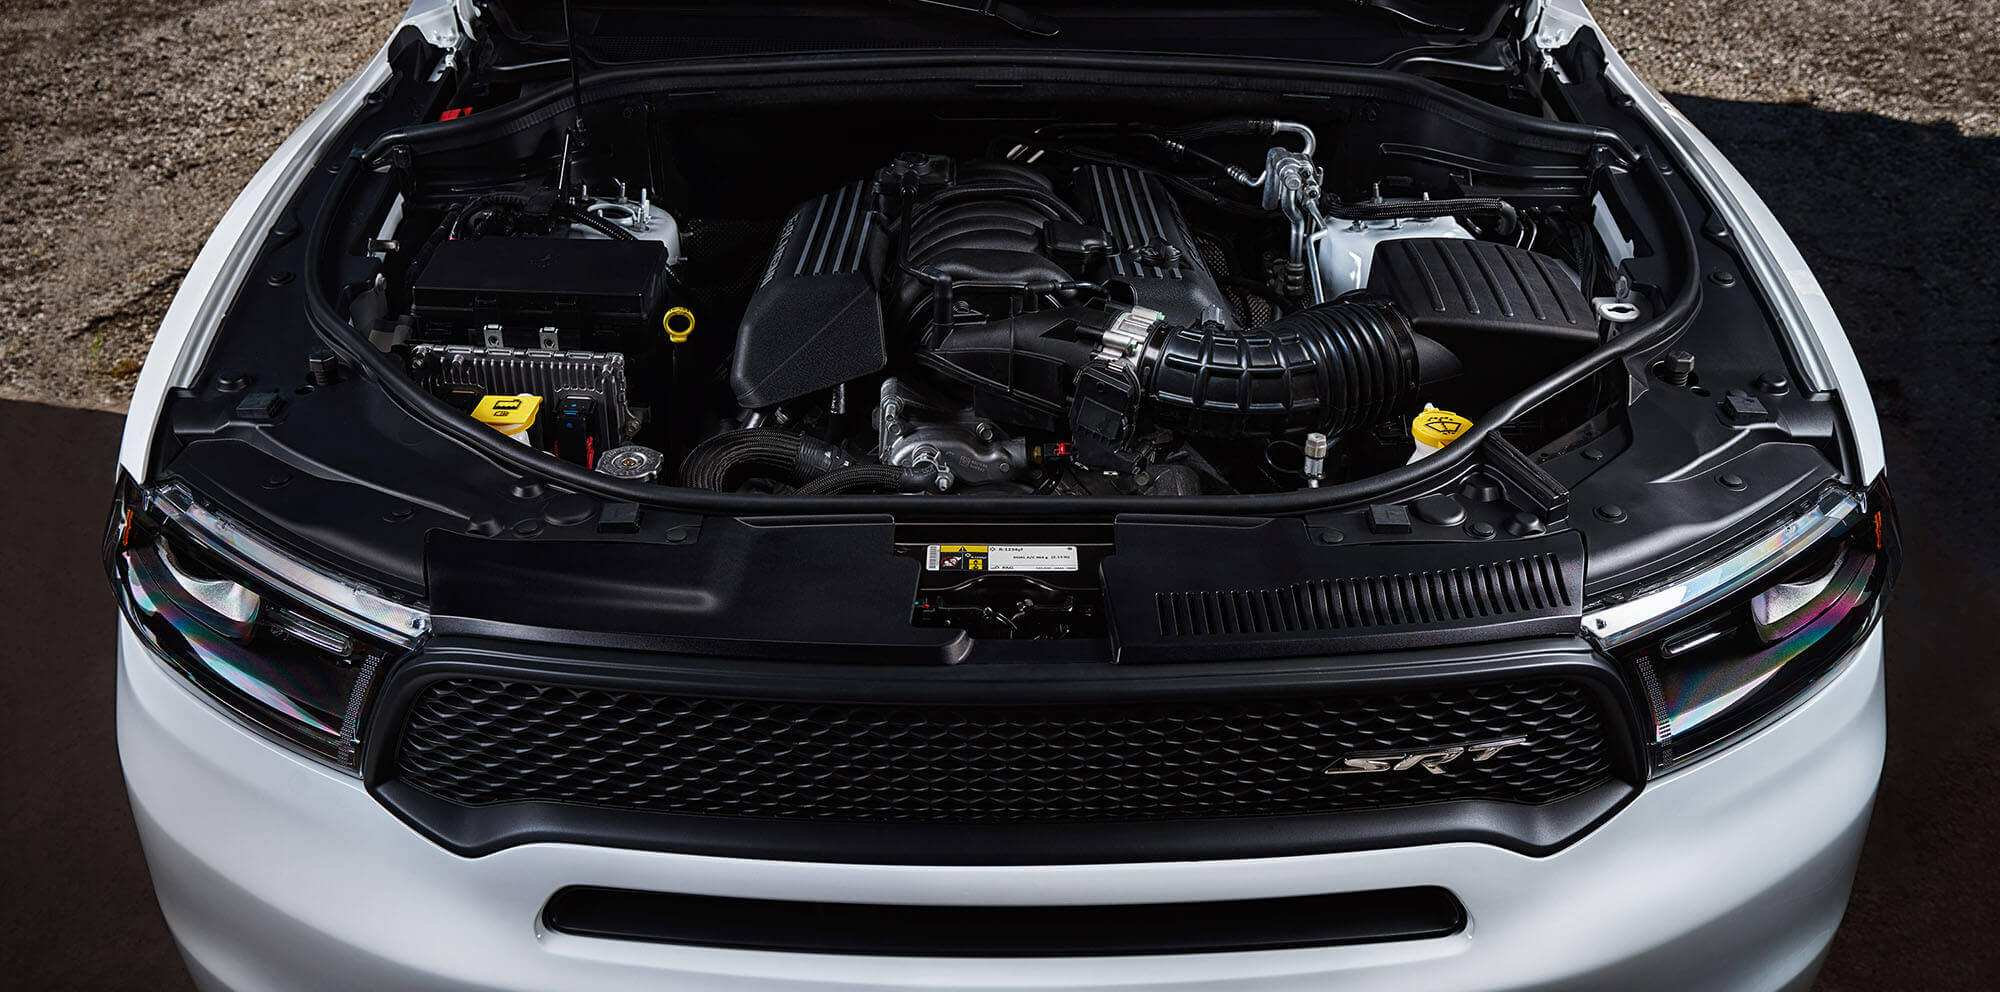 29 New 2020 Dodge Charger Engine Price by 2020 Dodge Charger Engine